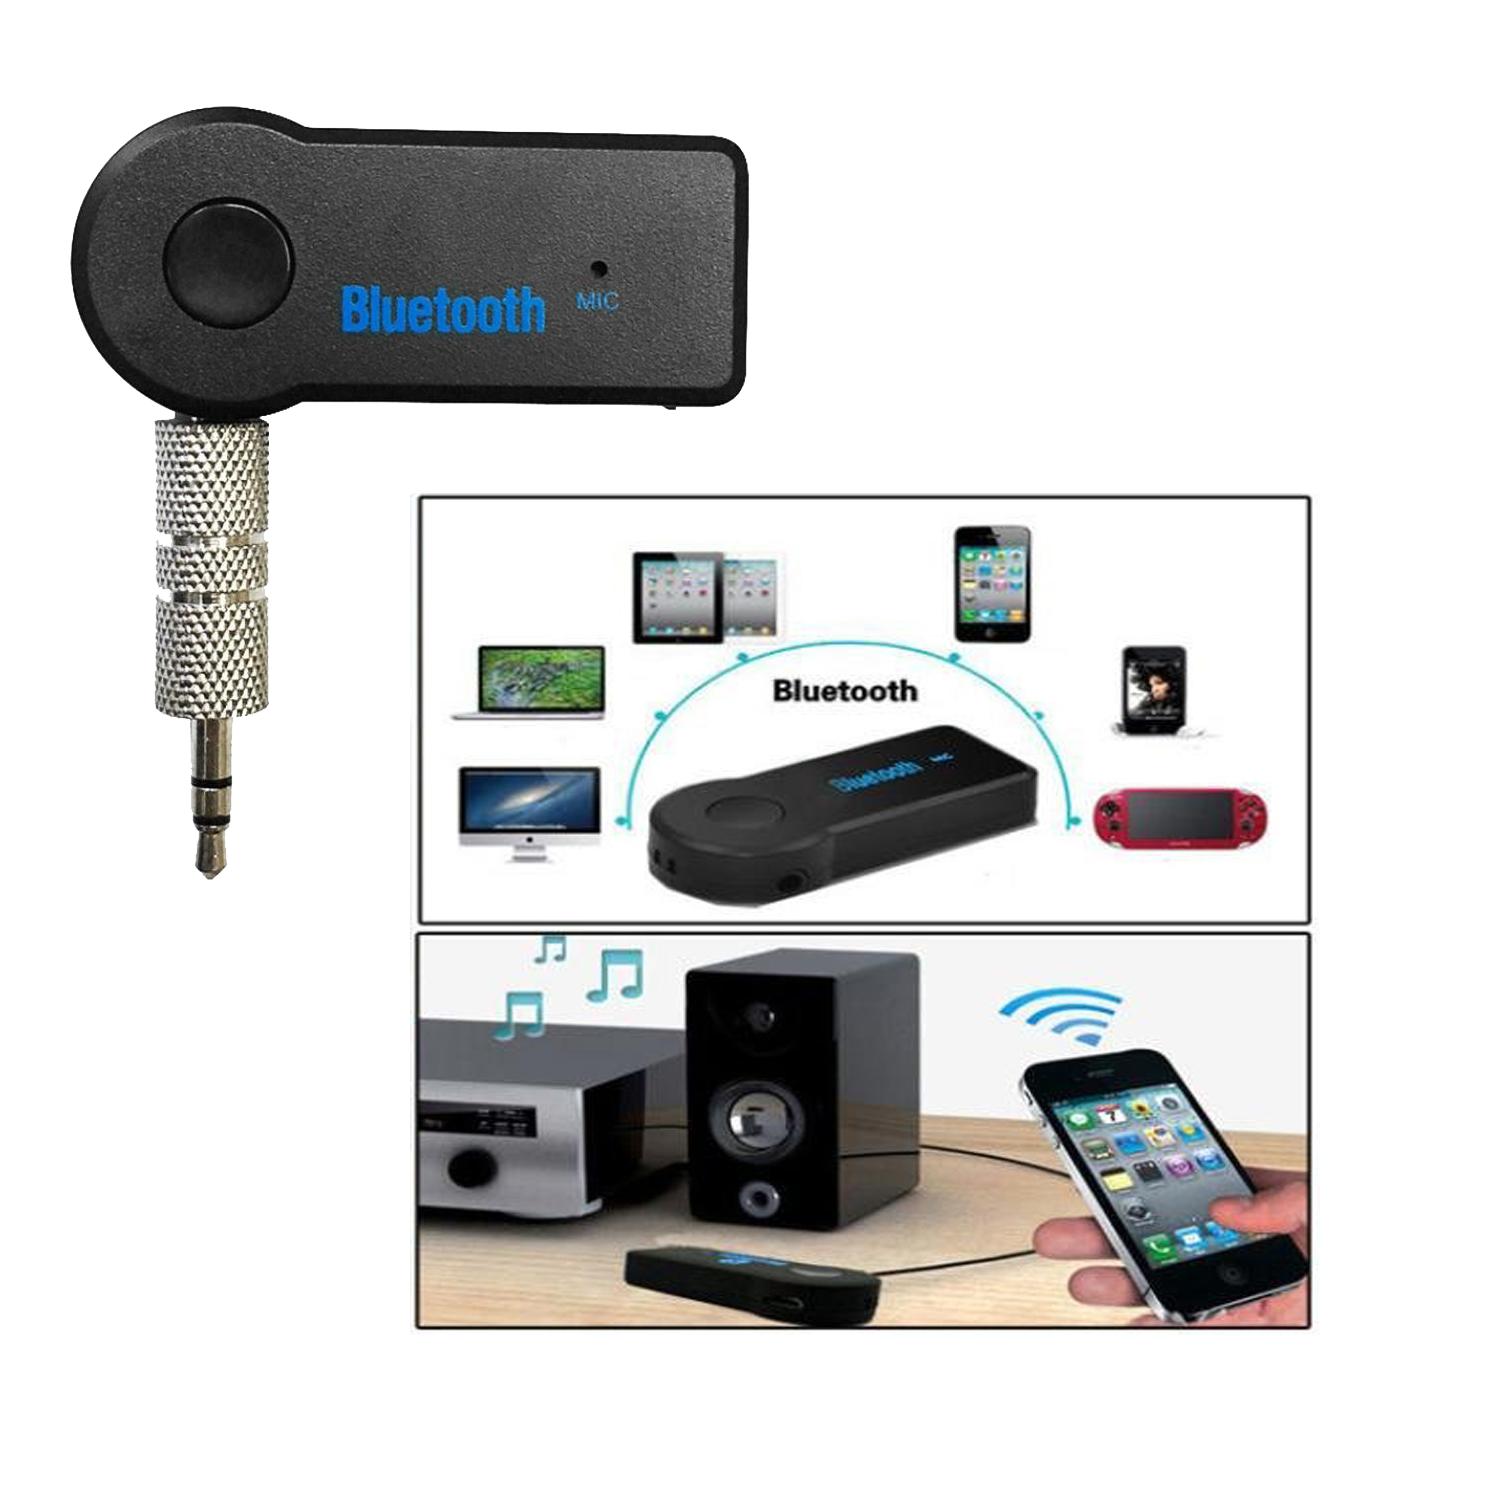 bluetooth aux audio transmitter with mic. Black Bedroom Furniture Sets. Home Design Ideas